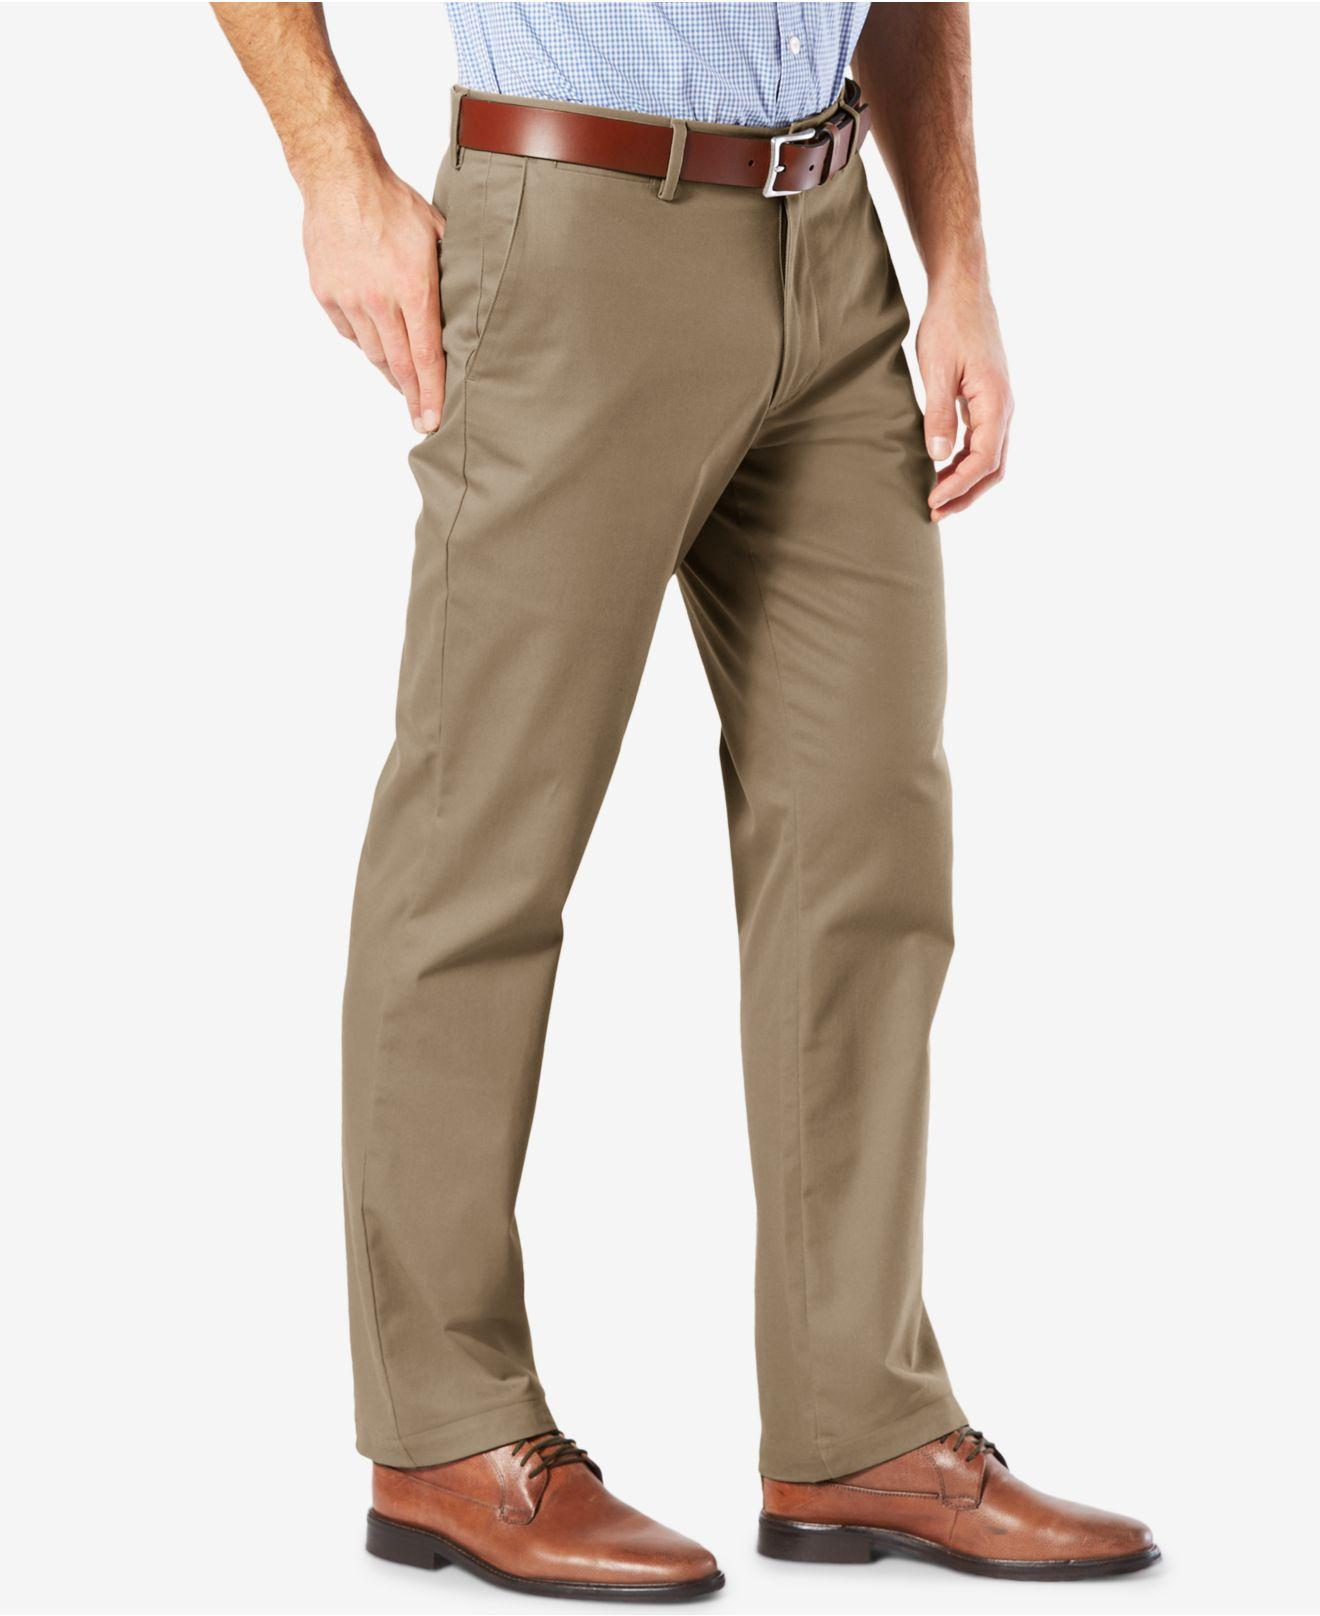 47471c5381a Lyst - Dockers Mens  Signature Lux Cotton Straight Fit Stretch Khaki Pants  in Natural for Men